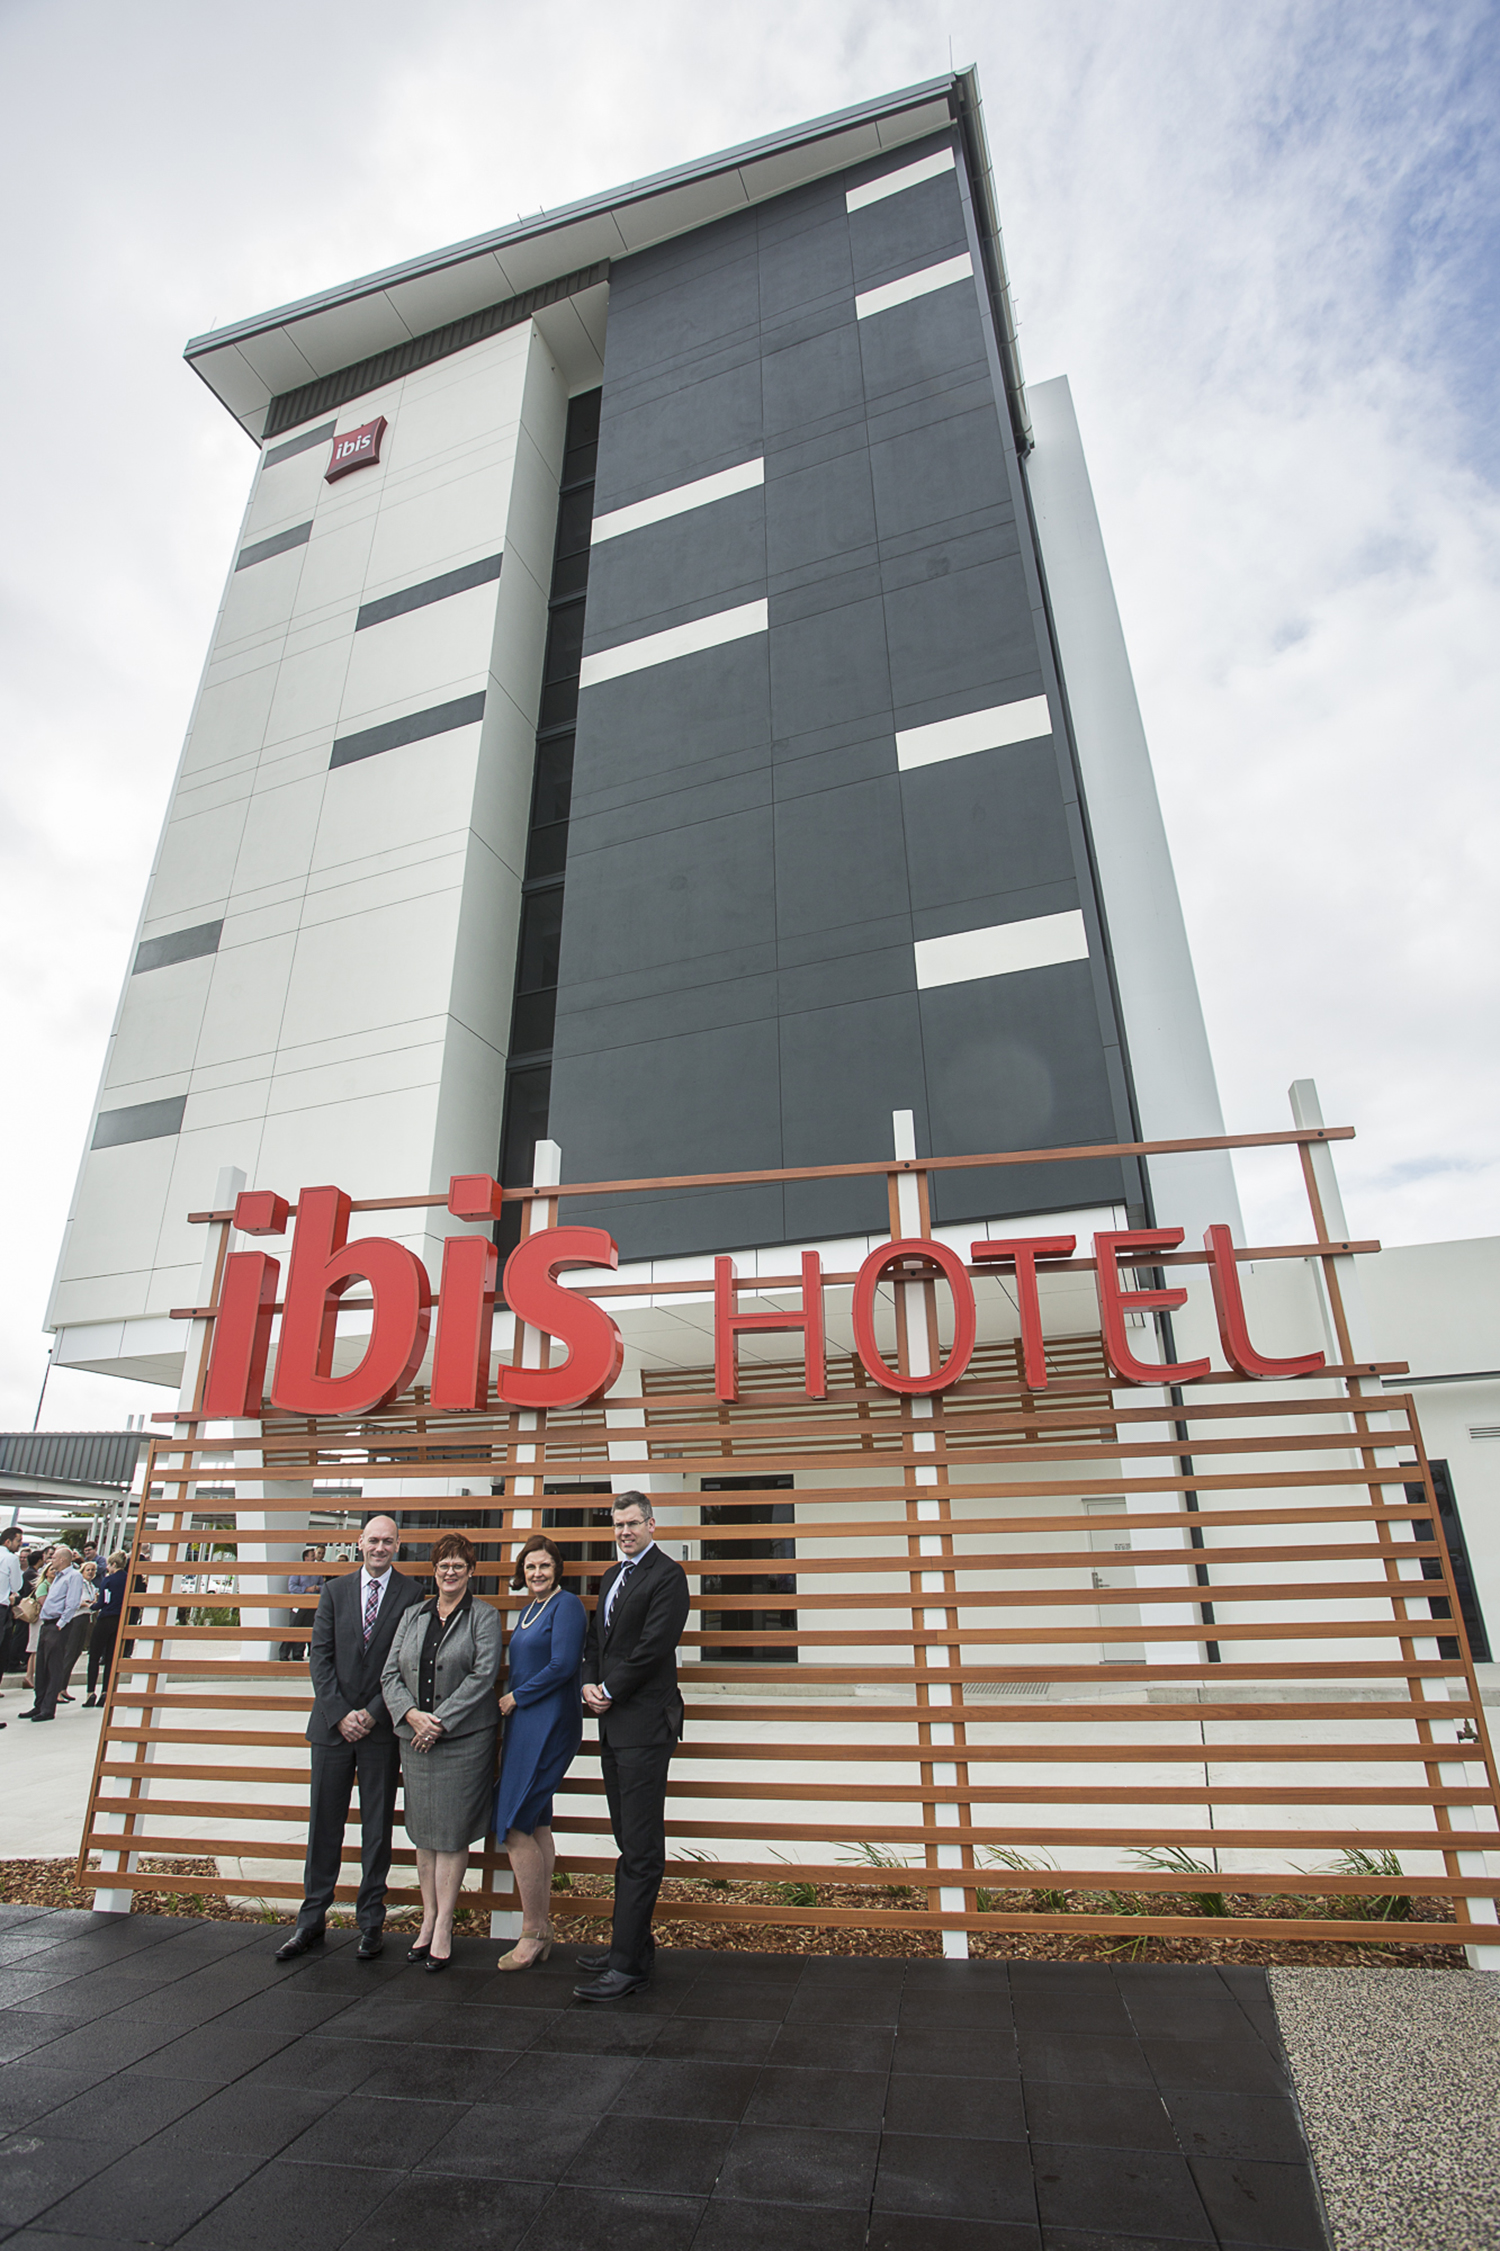 Ibis Hotel Commercial Marketing Photography